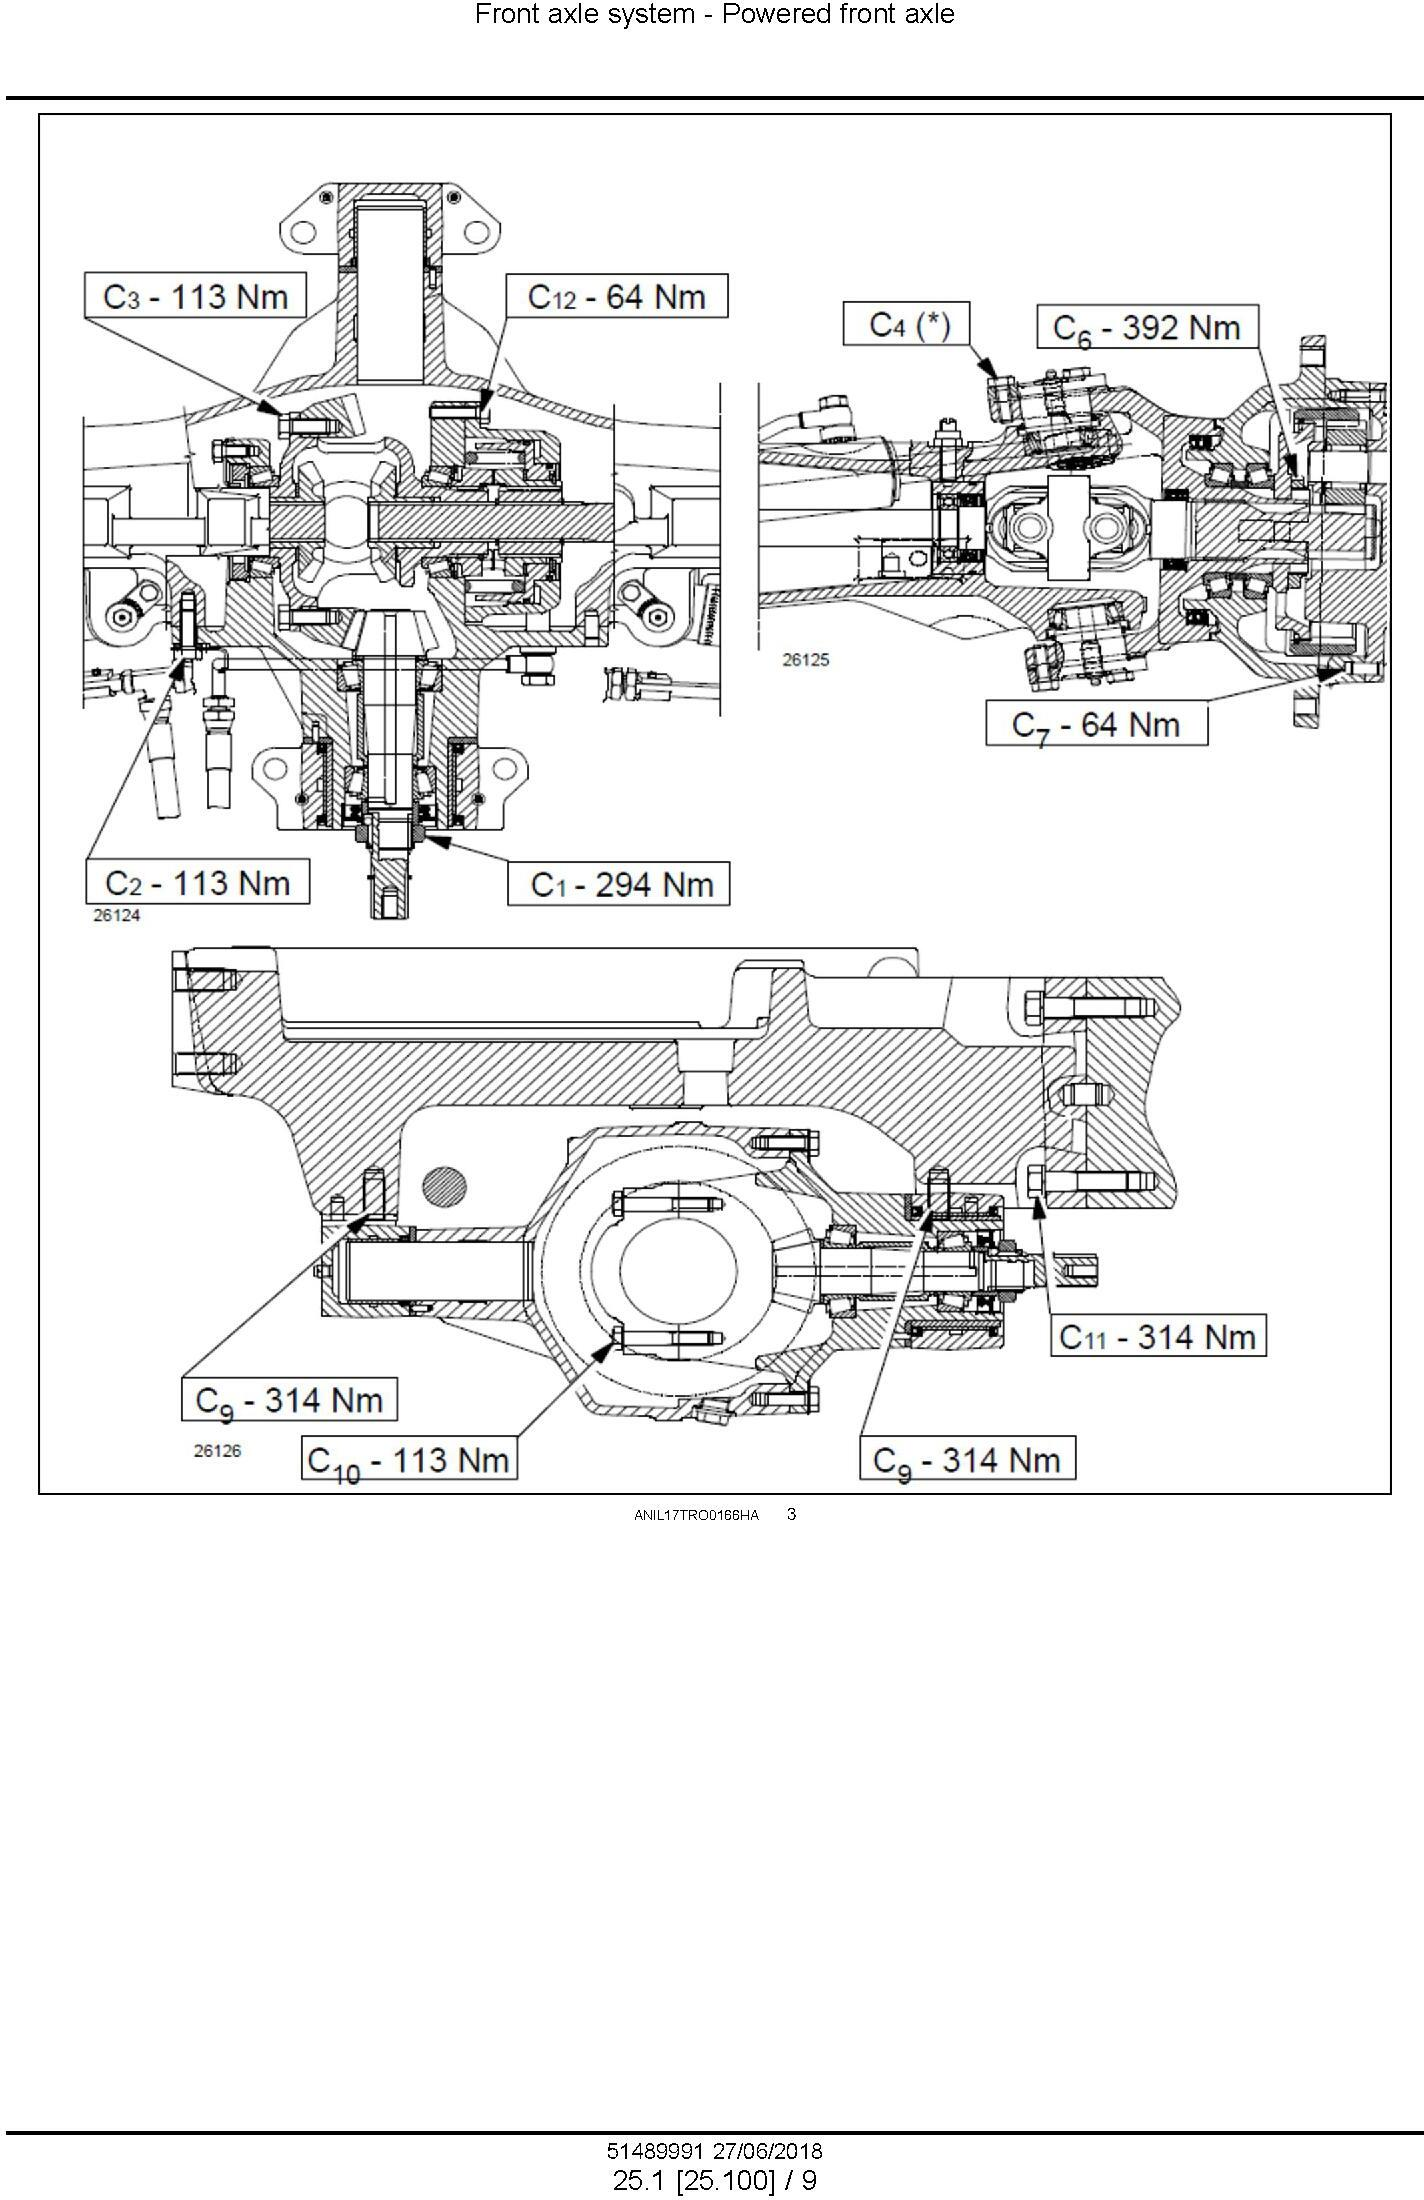 New Holland T4.55S, T4.65S, T4.75S Tractor Service Manual (Australia, New Zeland) - 3